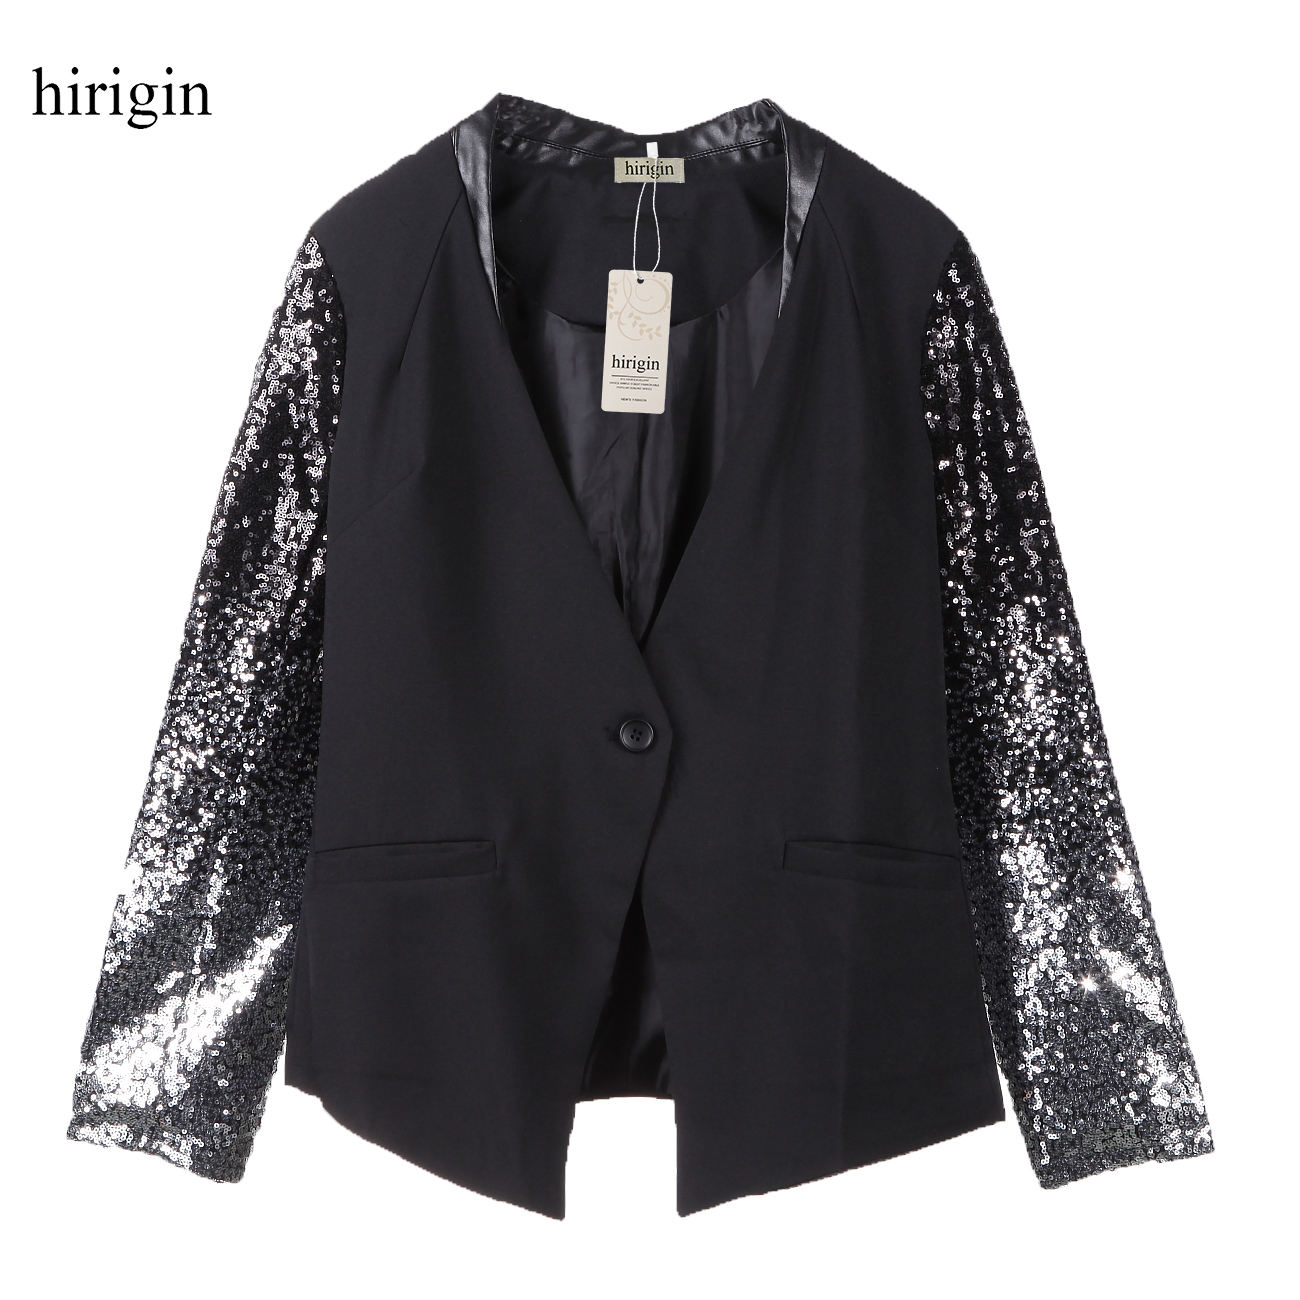 2018 New Fashion Woman Blazer OL Slim Long Sleeve Jacket Sequins Sleeve Blazers Tops Stylish Womens Clothes Cardigan Coats